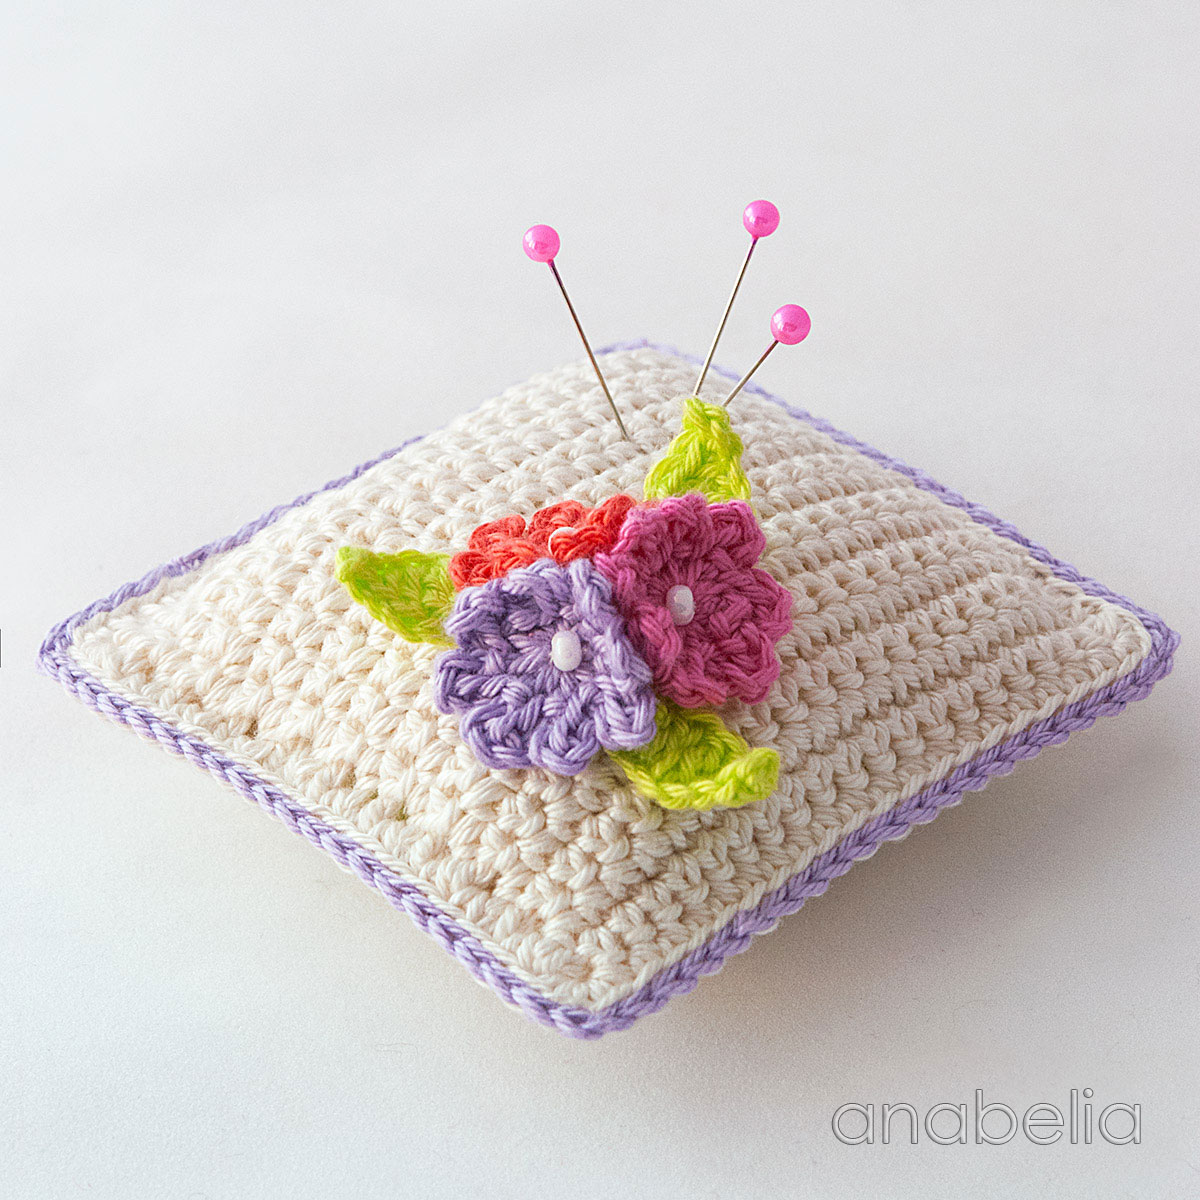 anabelia craft design small flowers crochet pincushion